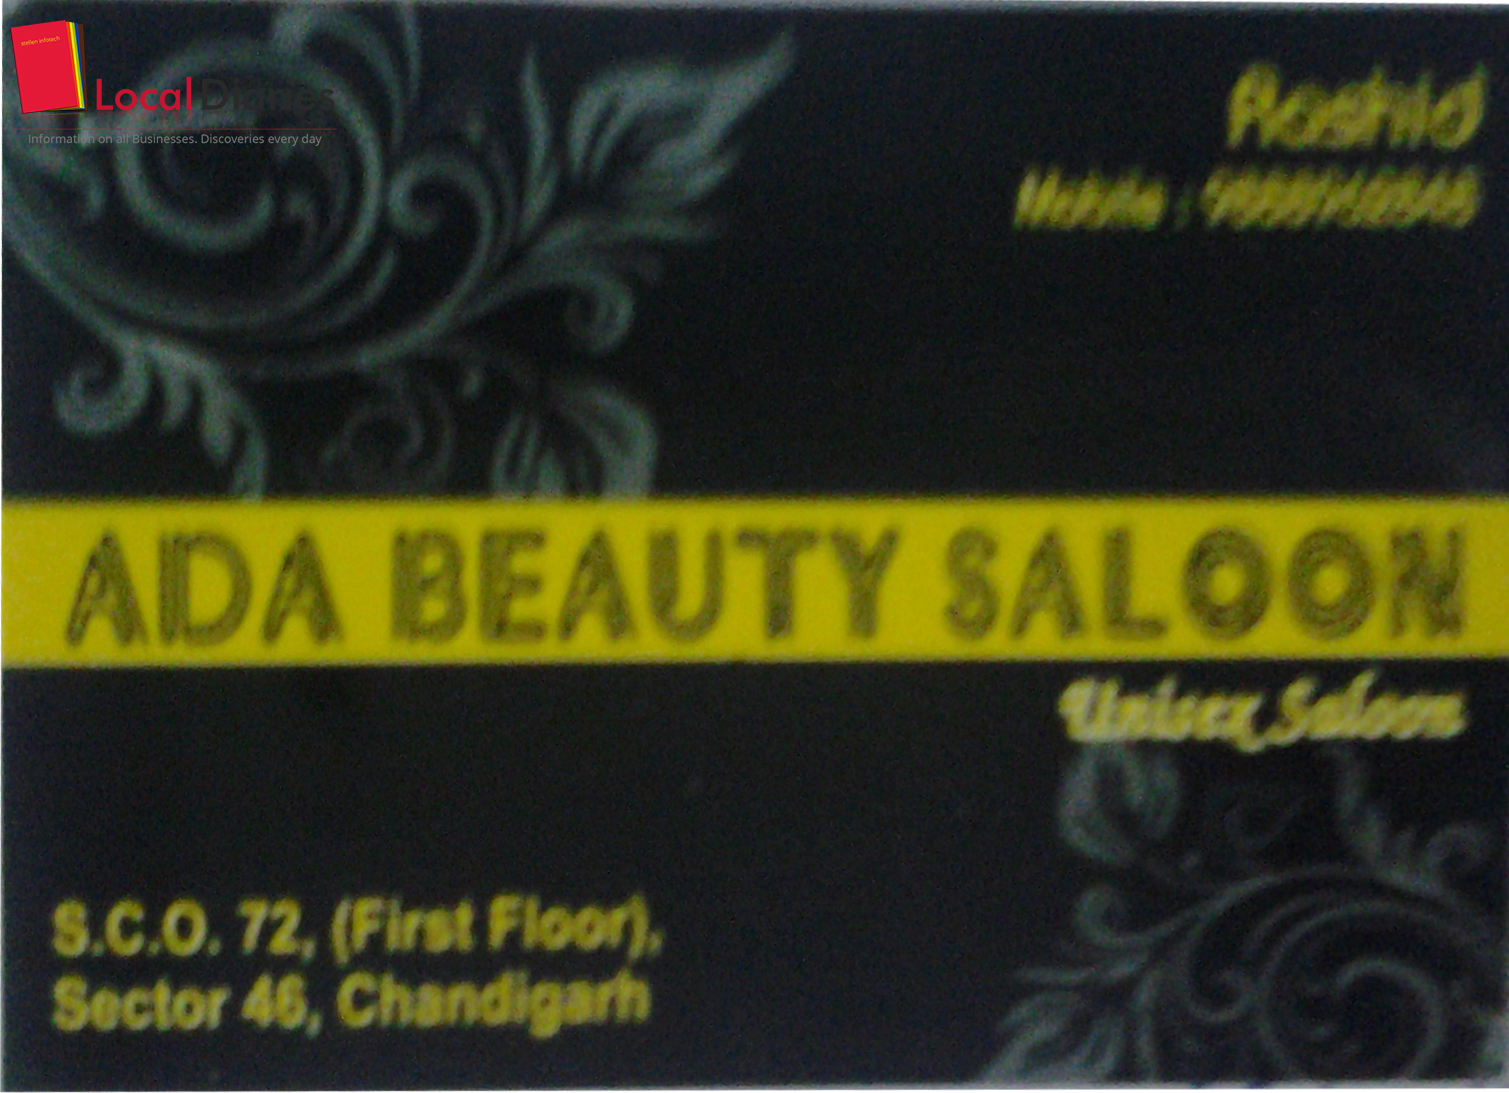 ada beauty salon in sector 46 c chandigarh localdiaries